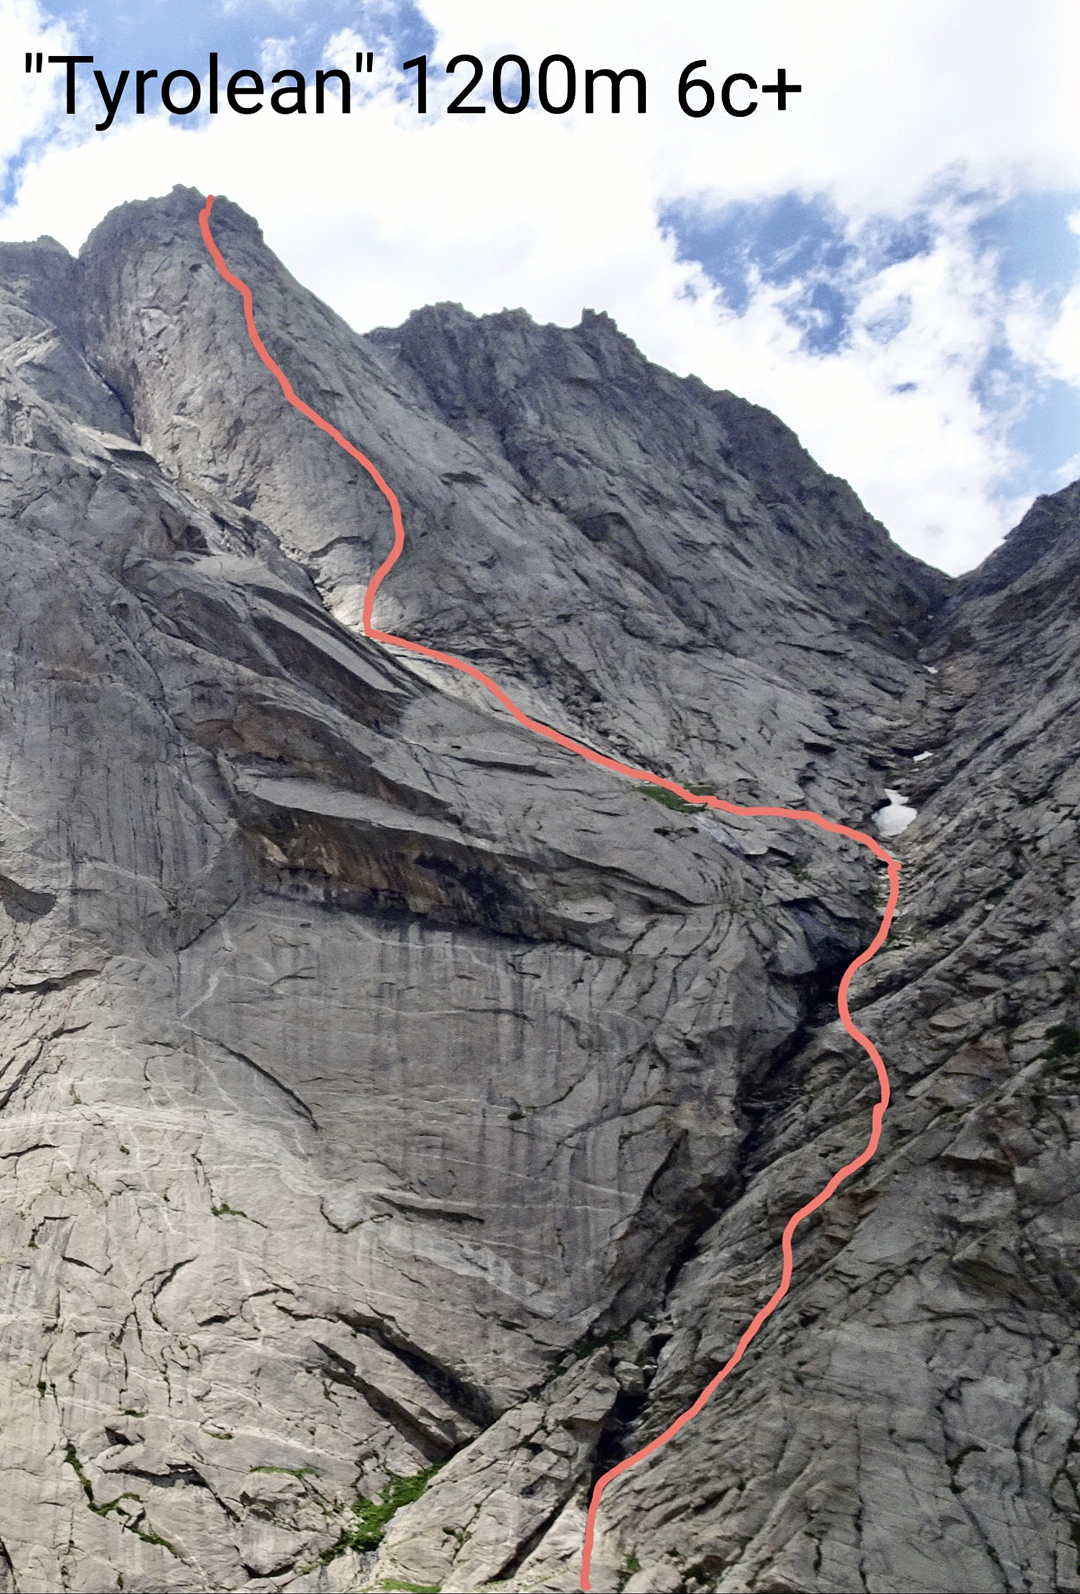 The line of Tyrolean on Silver Wall seen from below.